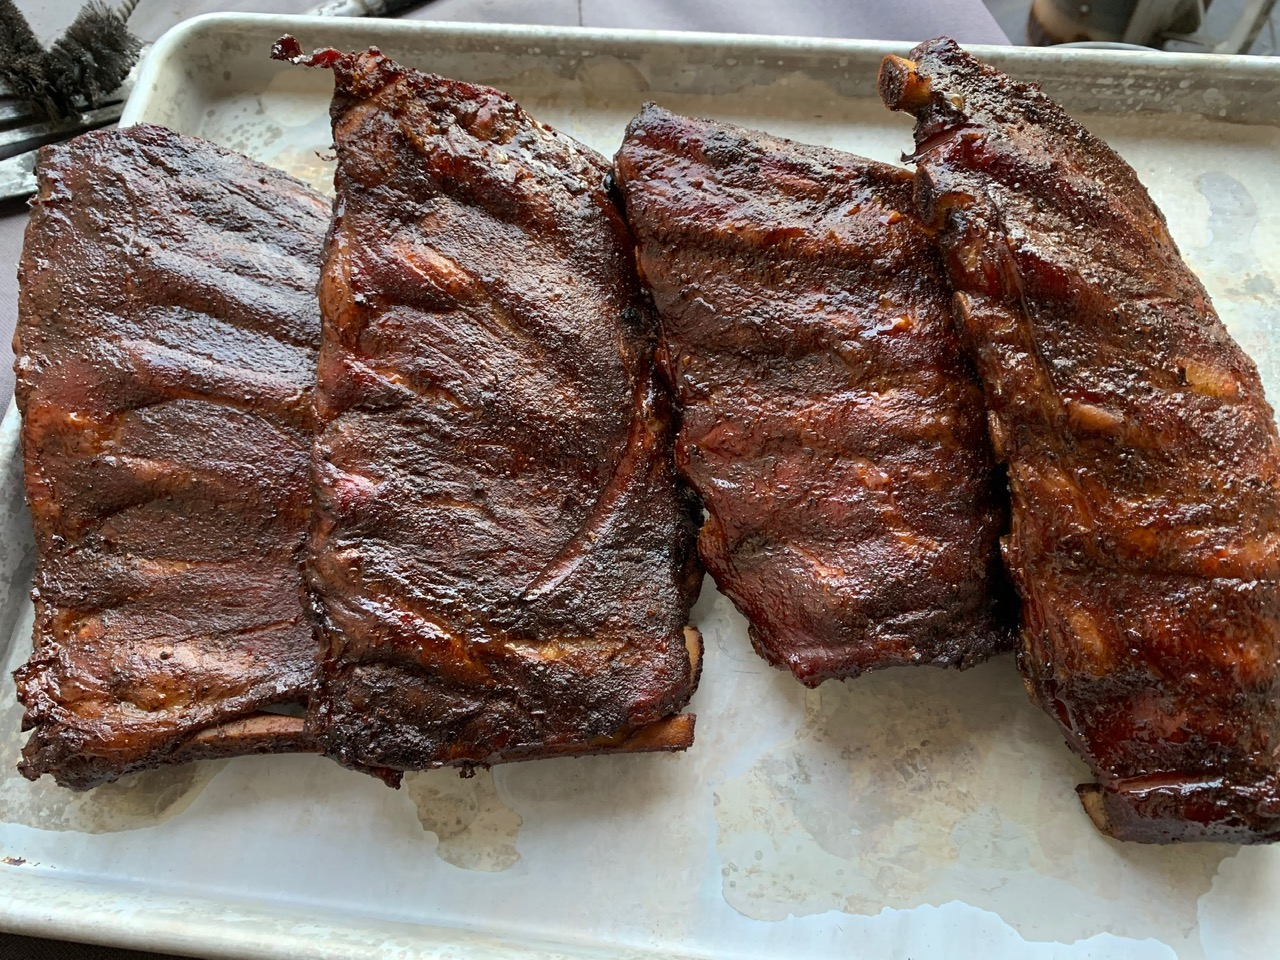 finished ribs on tray